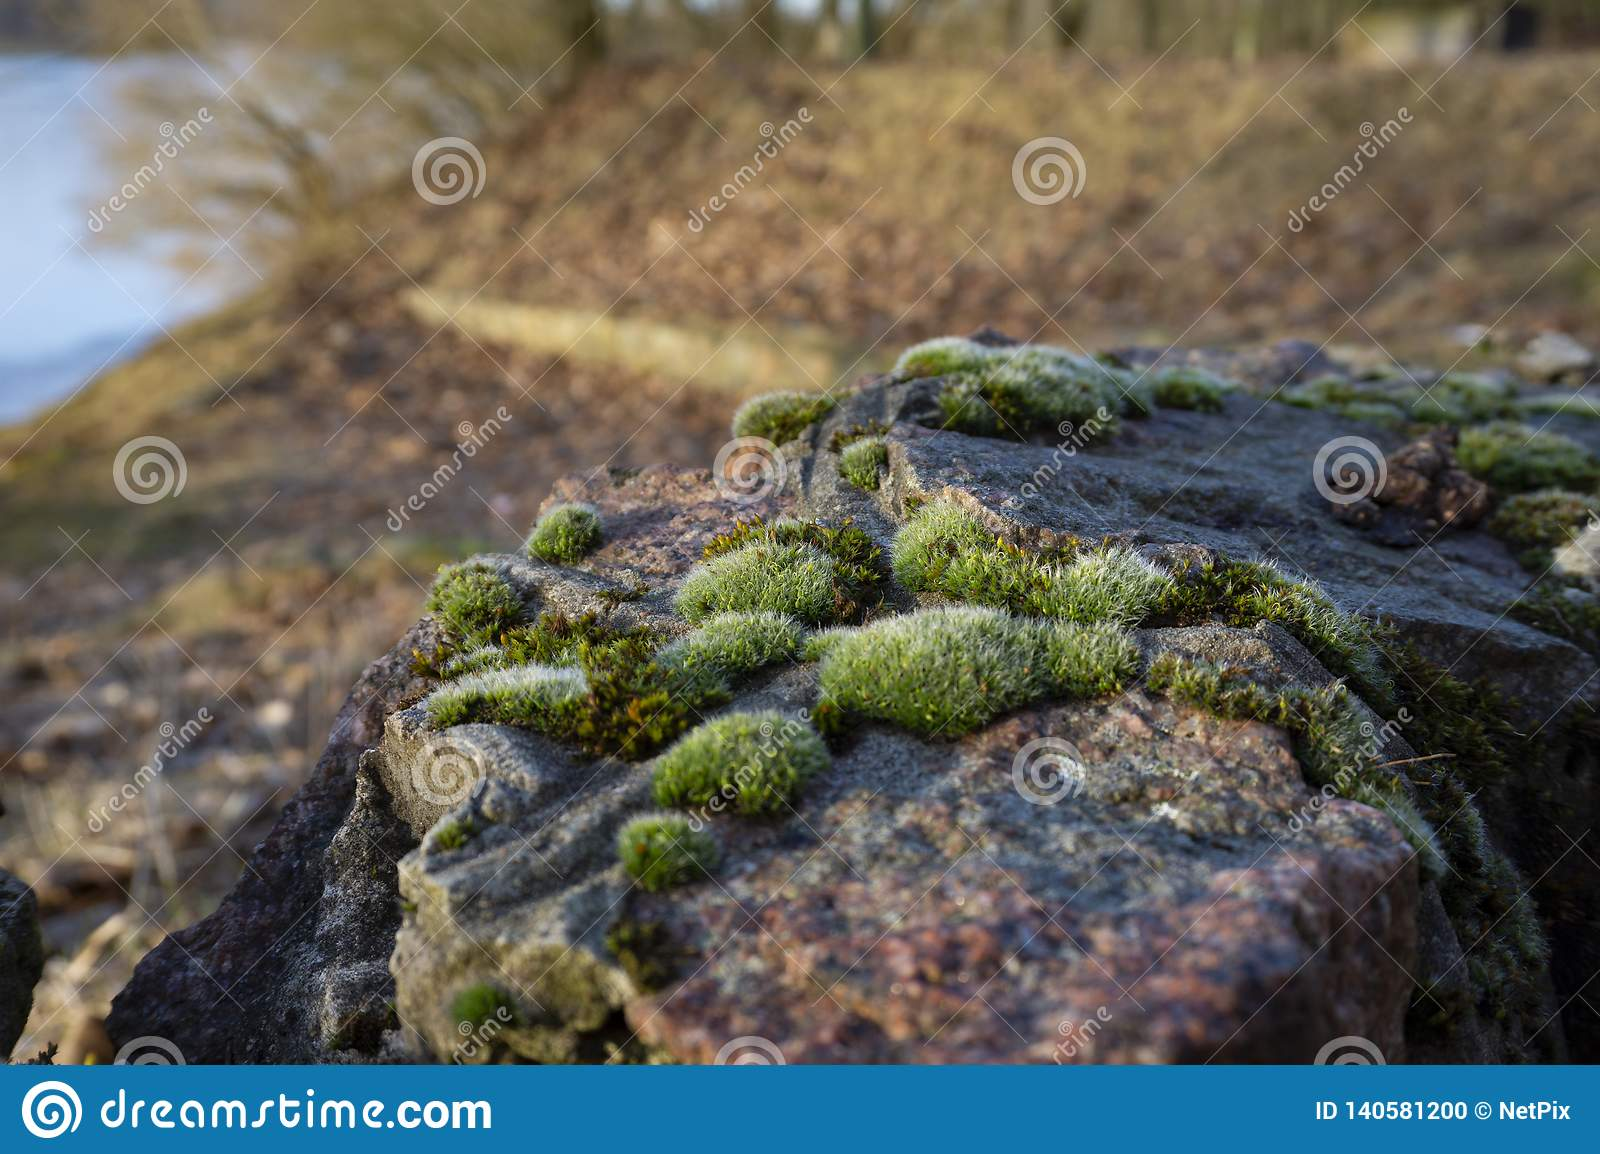 Moss on stones in close-up